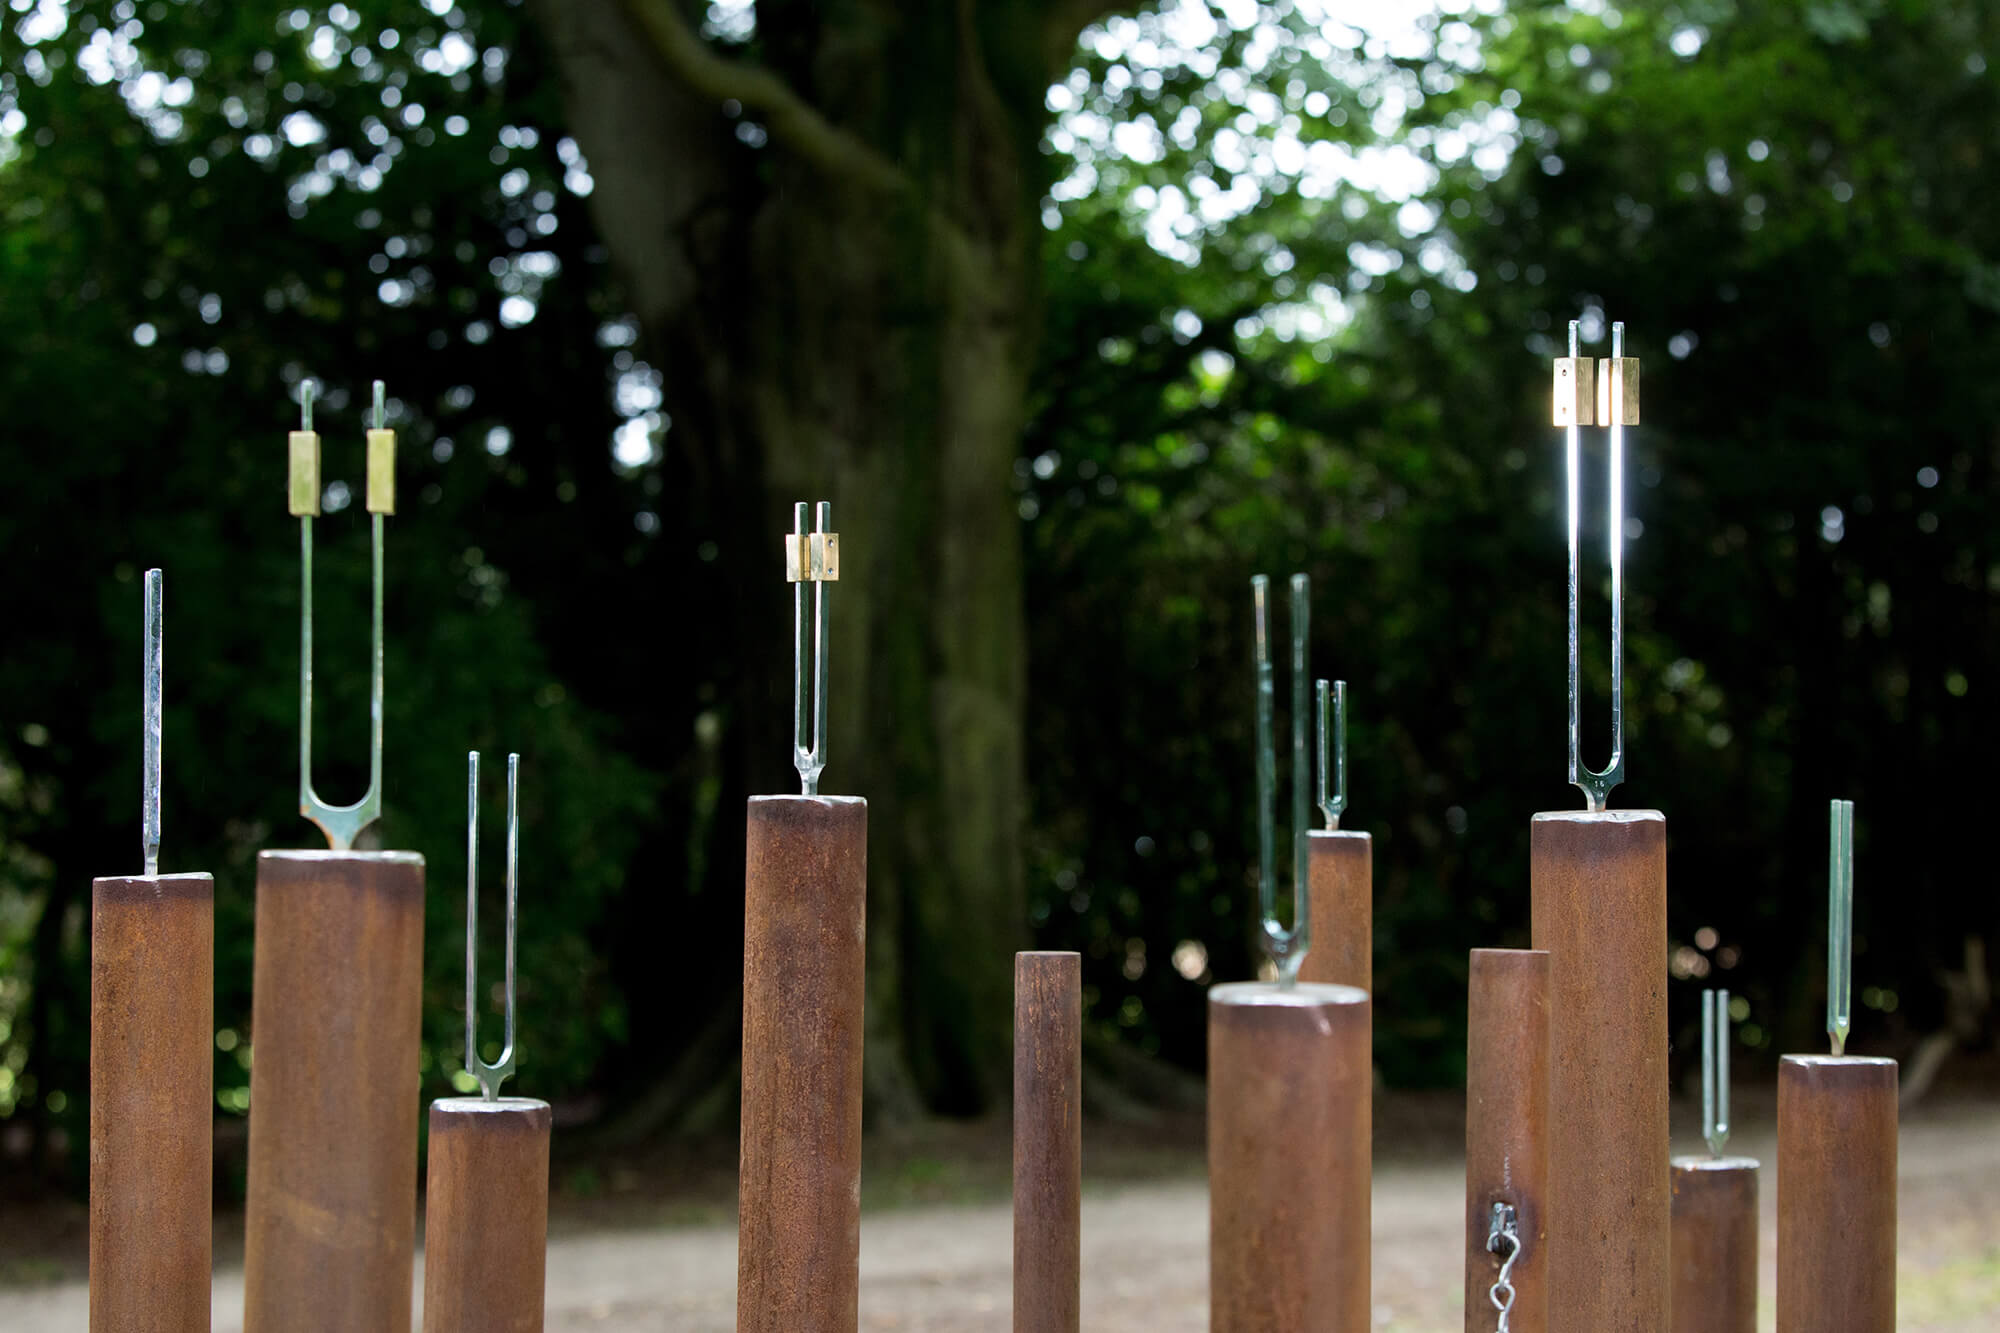 tuning forks of different sizes standing on poles